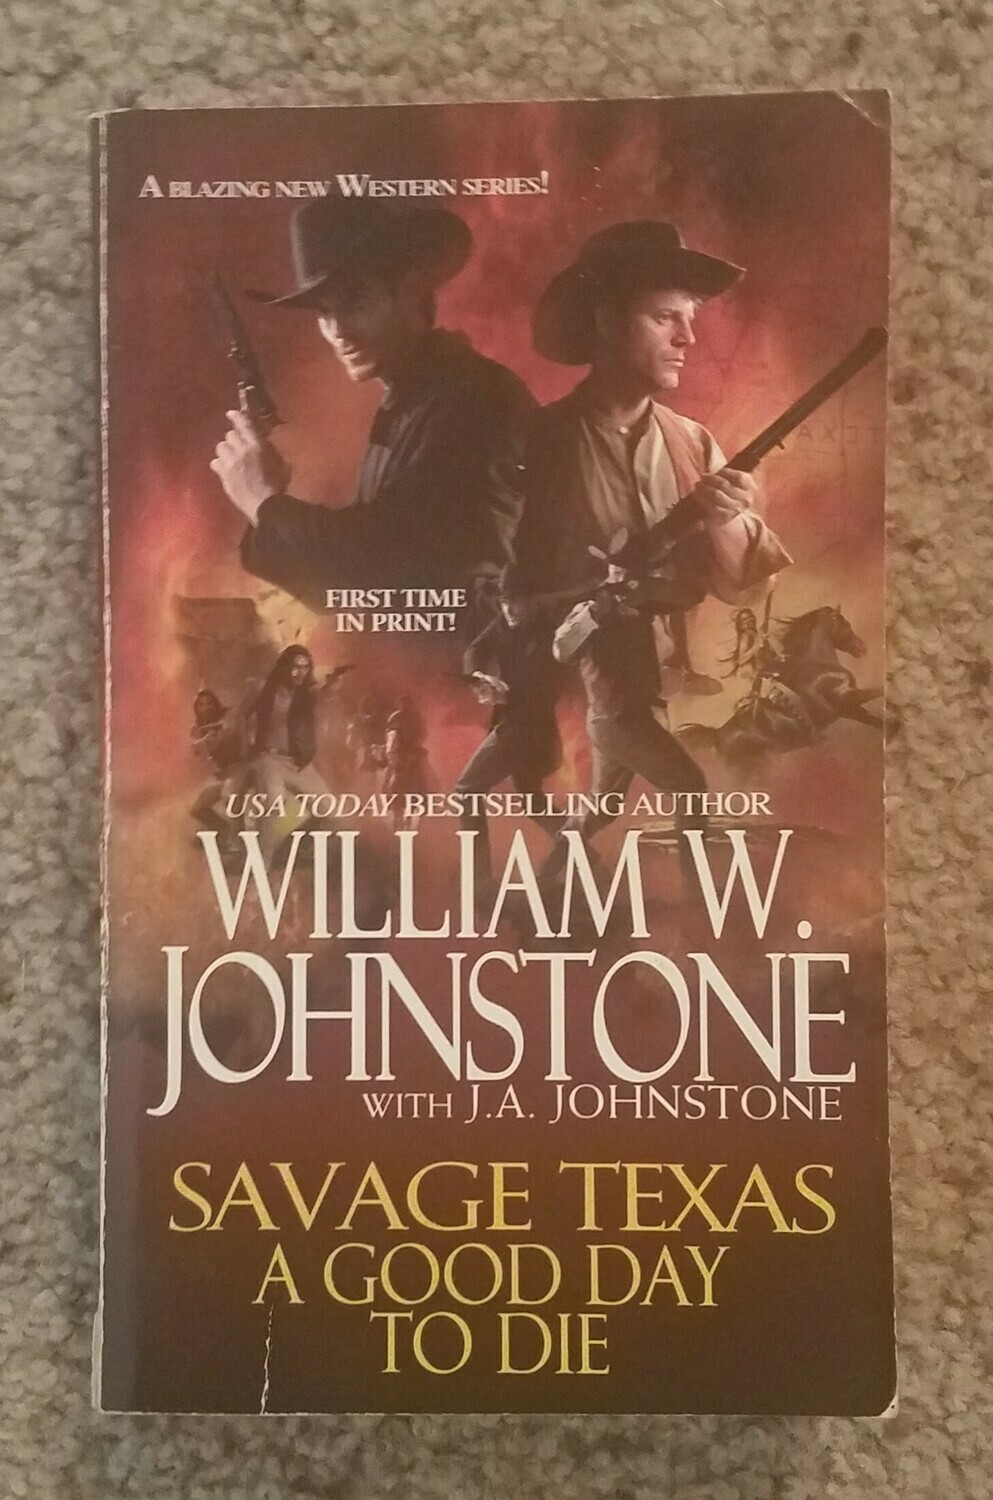 Savage Texas: A Good Day To Die by William W. Johnstone with J.A. Johnstone